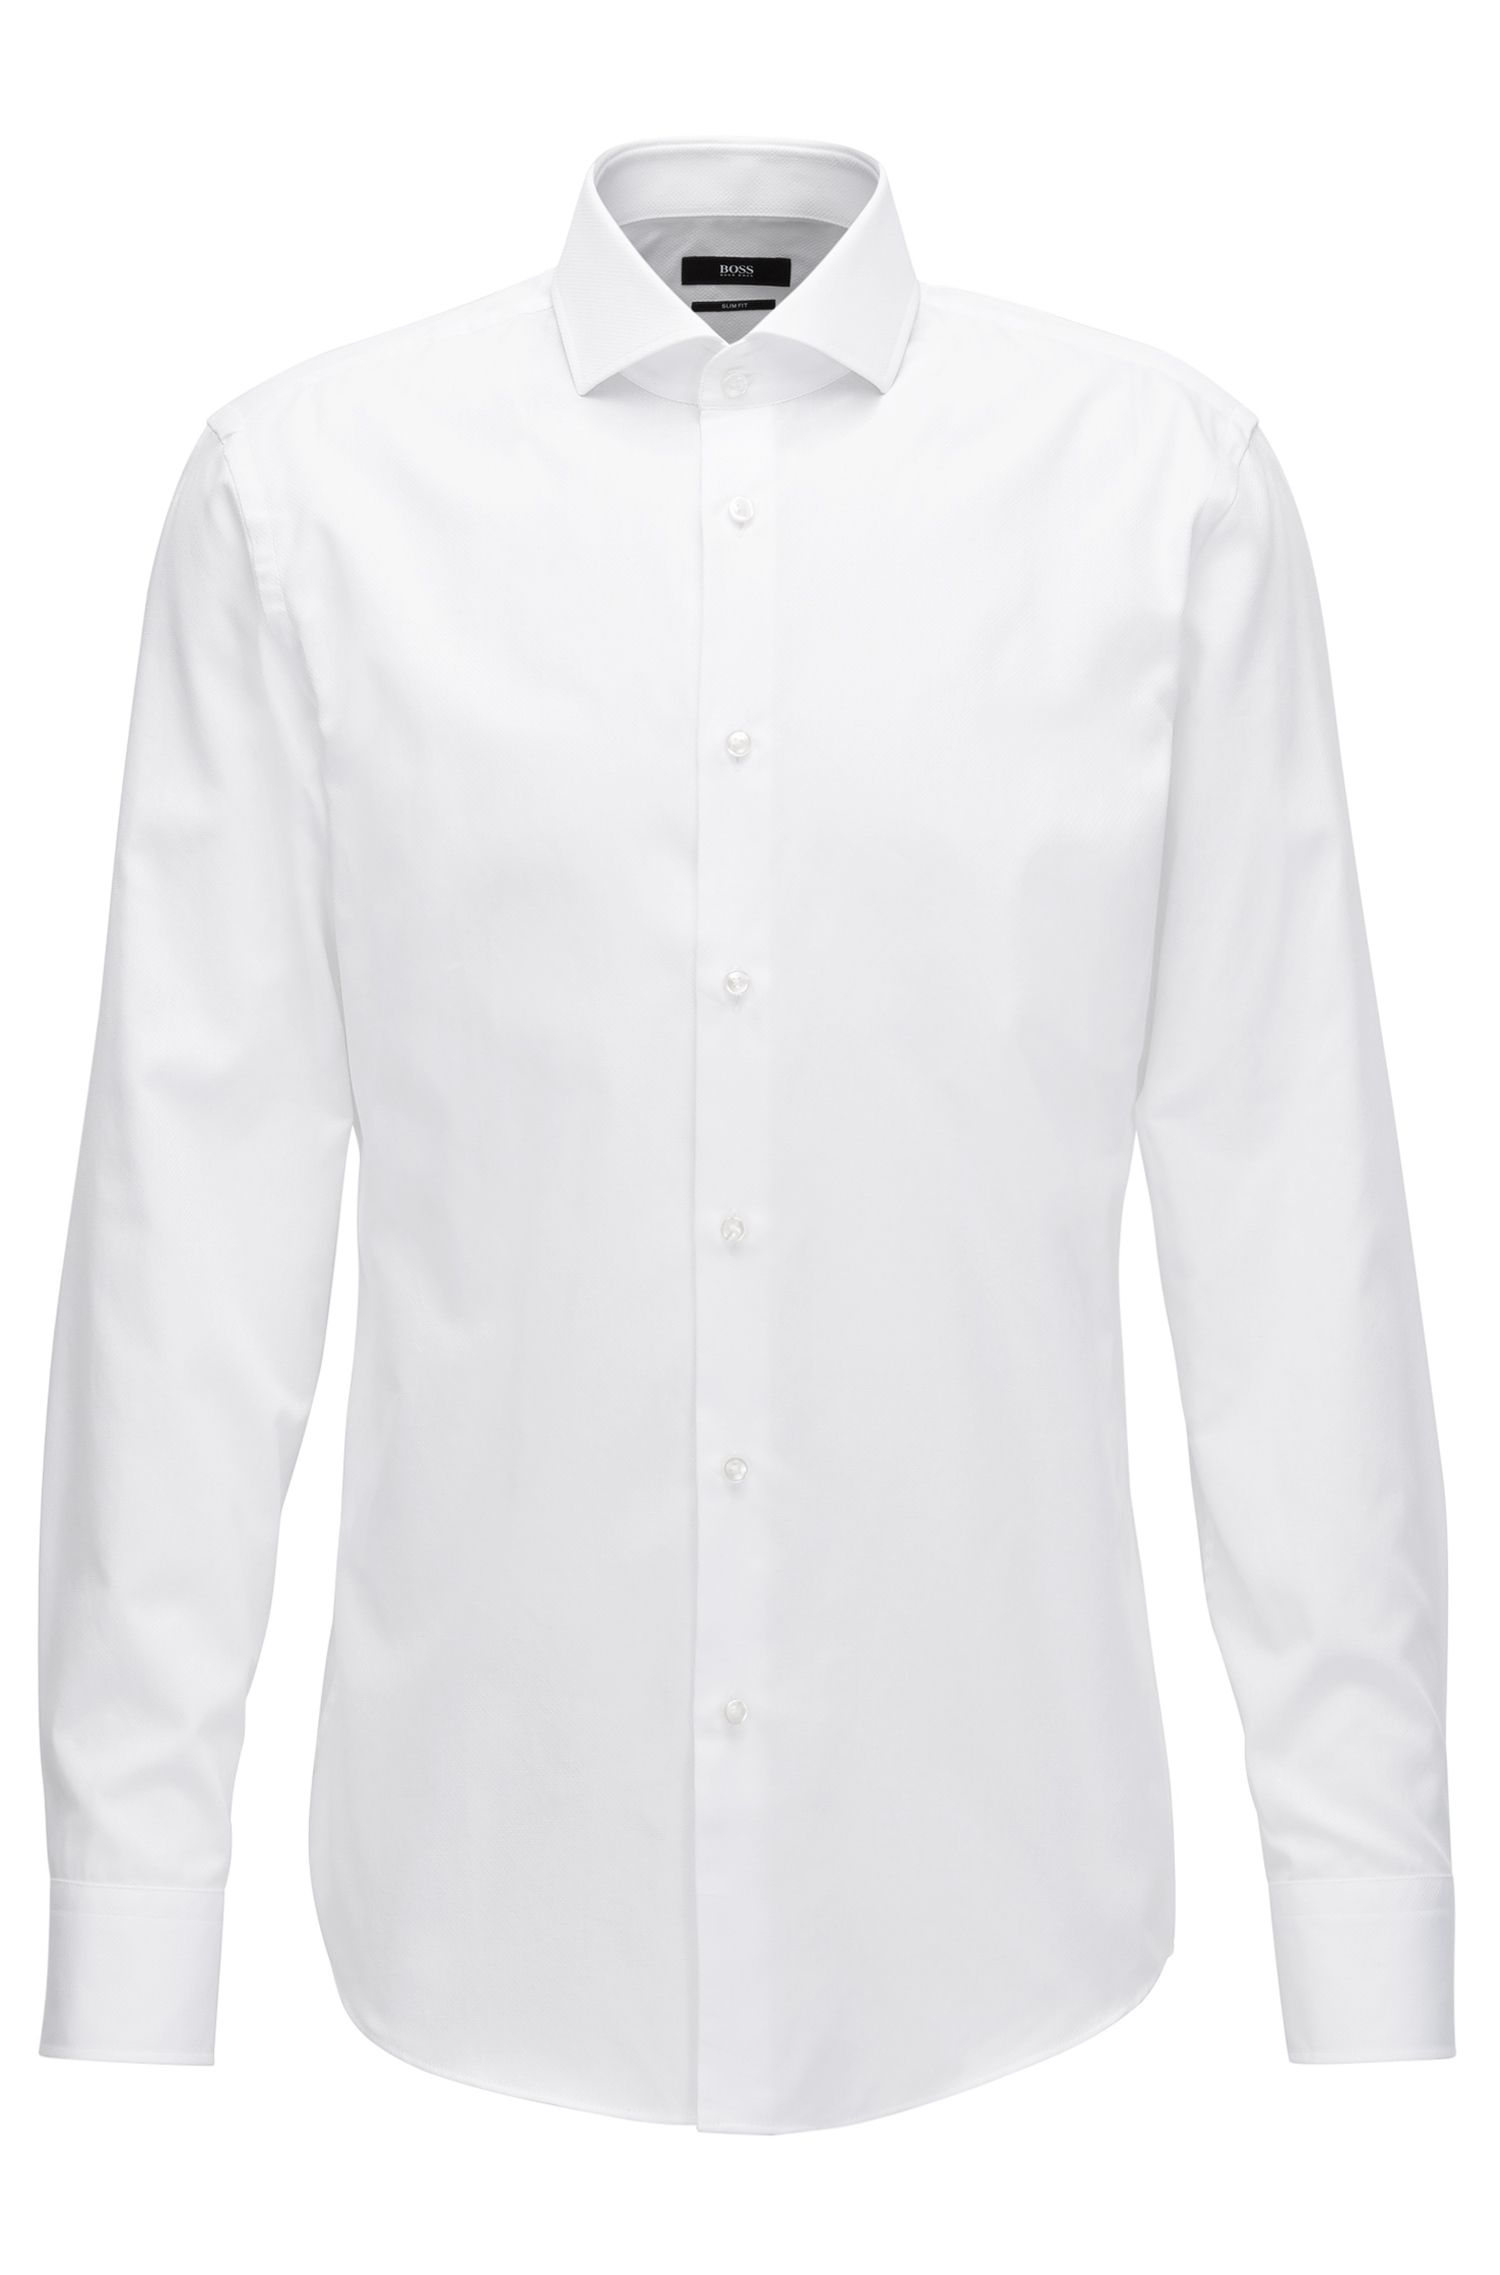 Micro-structure cotton shirt in a slim fit